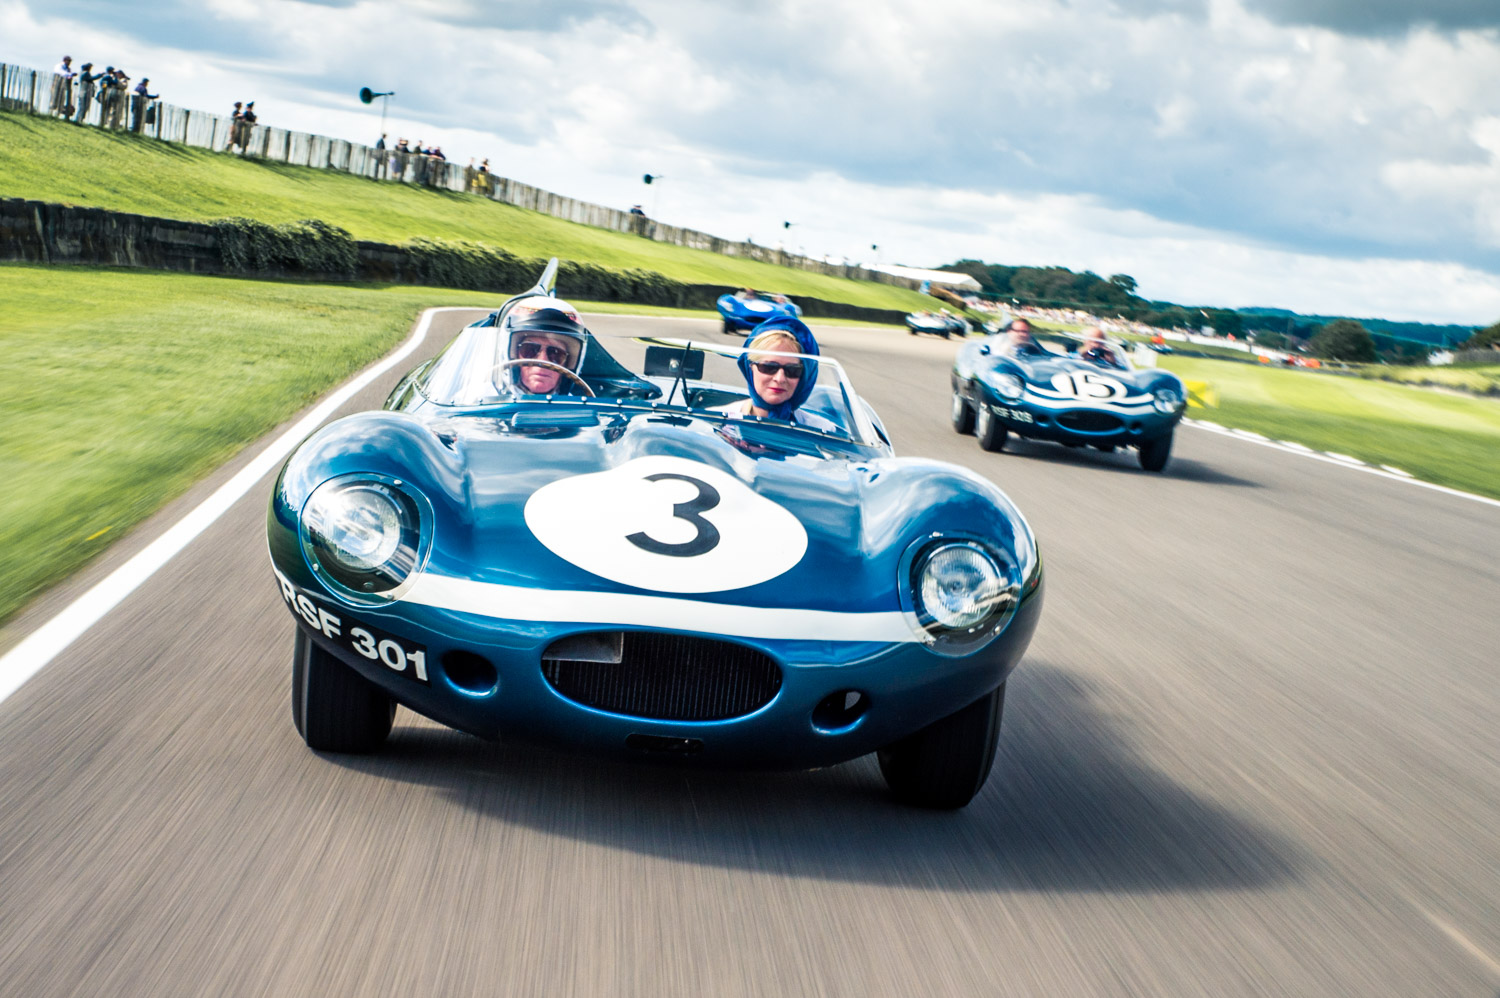 Jayson-Fong-Photography-Form-and-function-international-Jaguar-Dtype-Goodwood.jpg